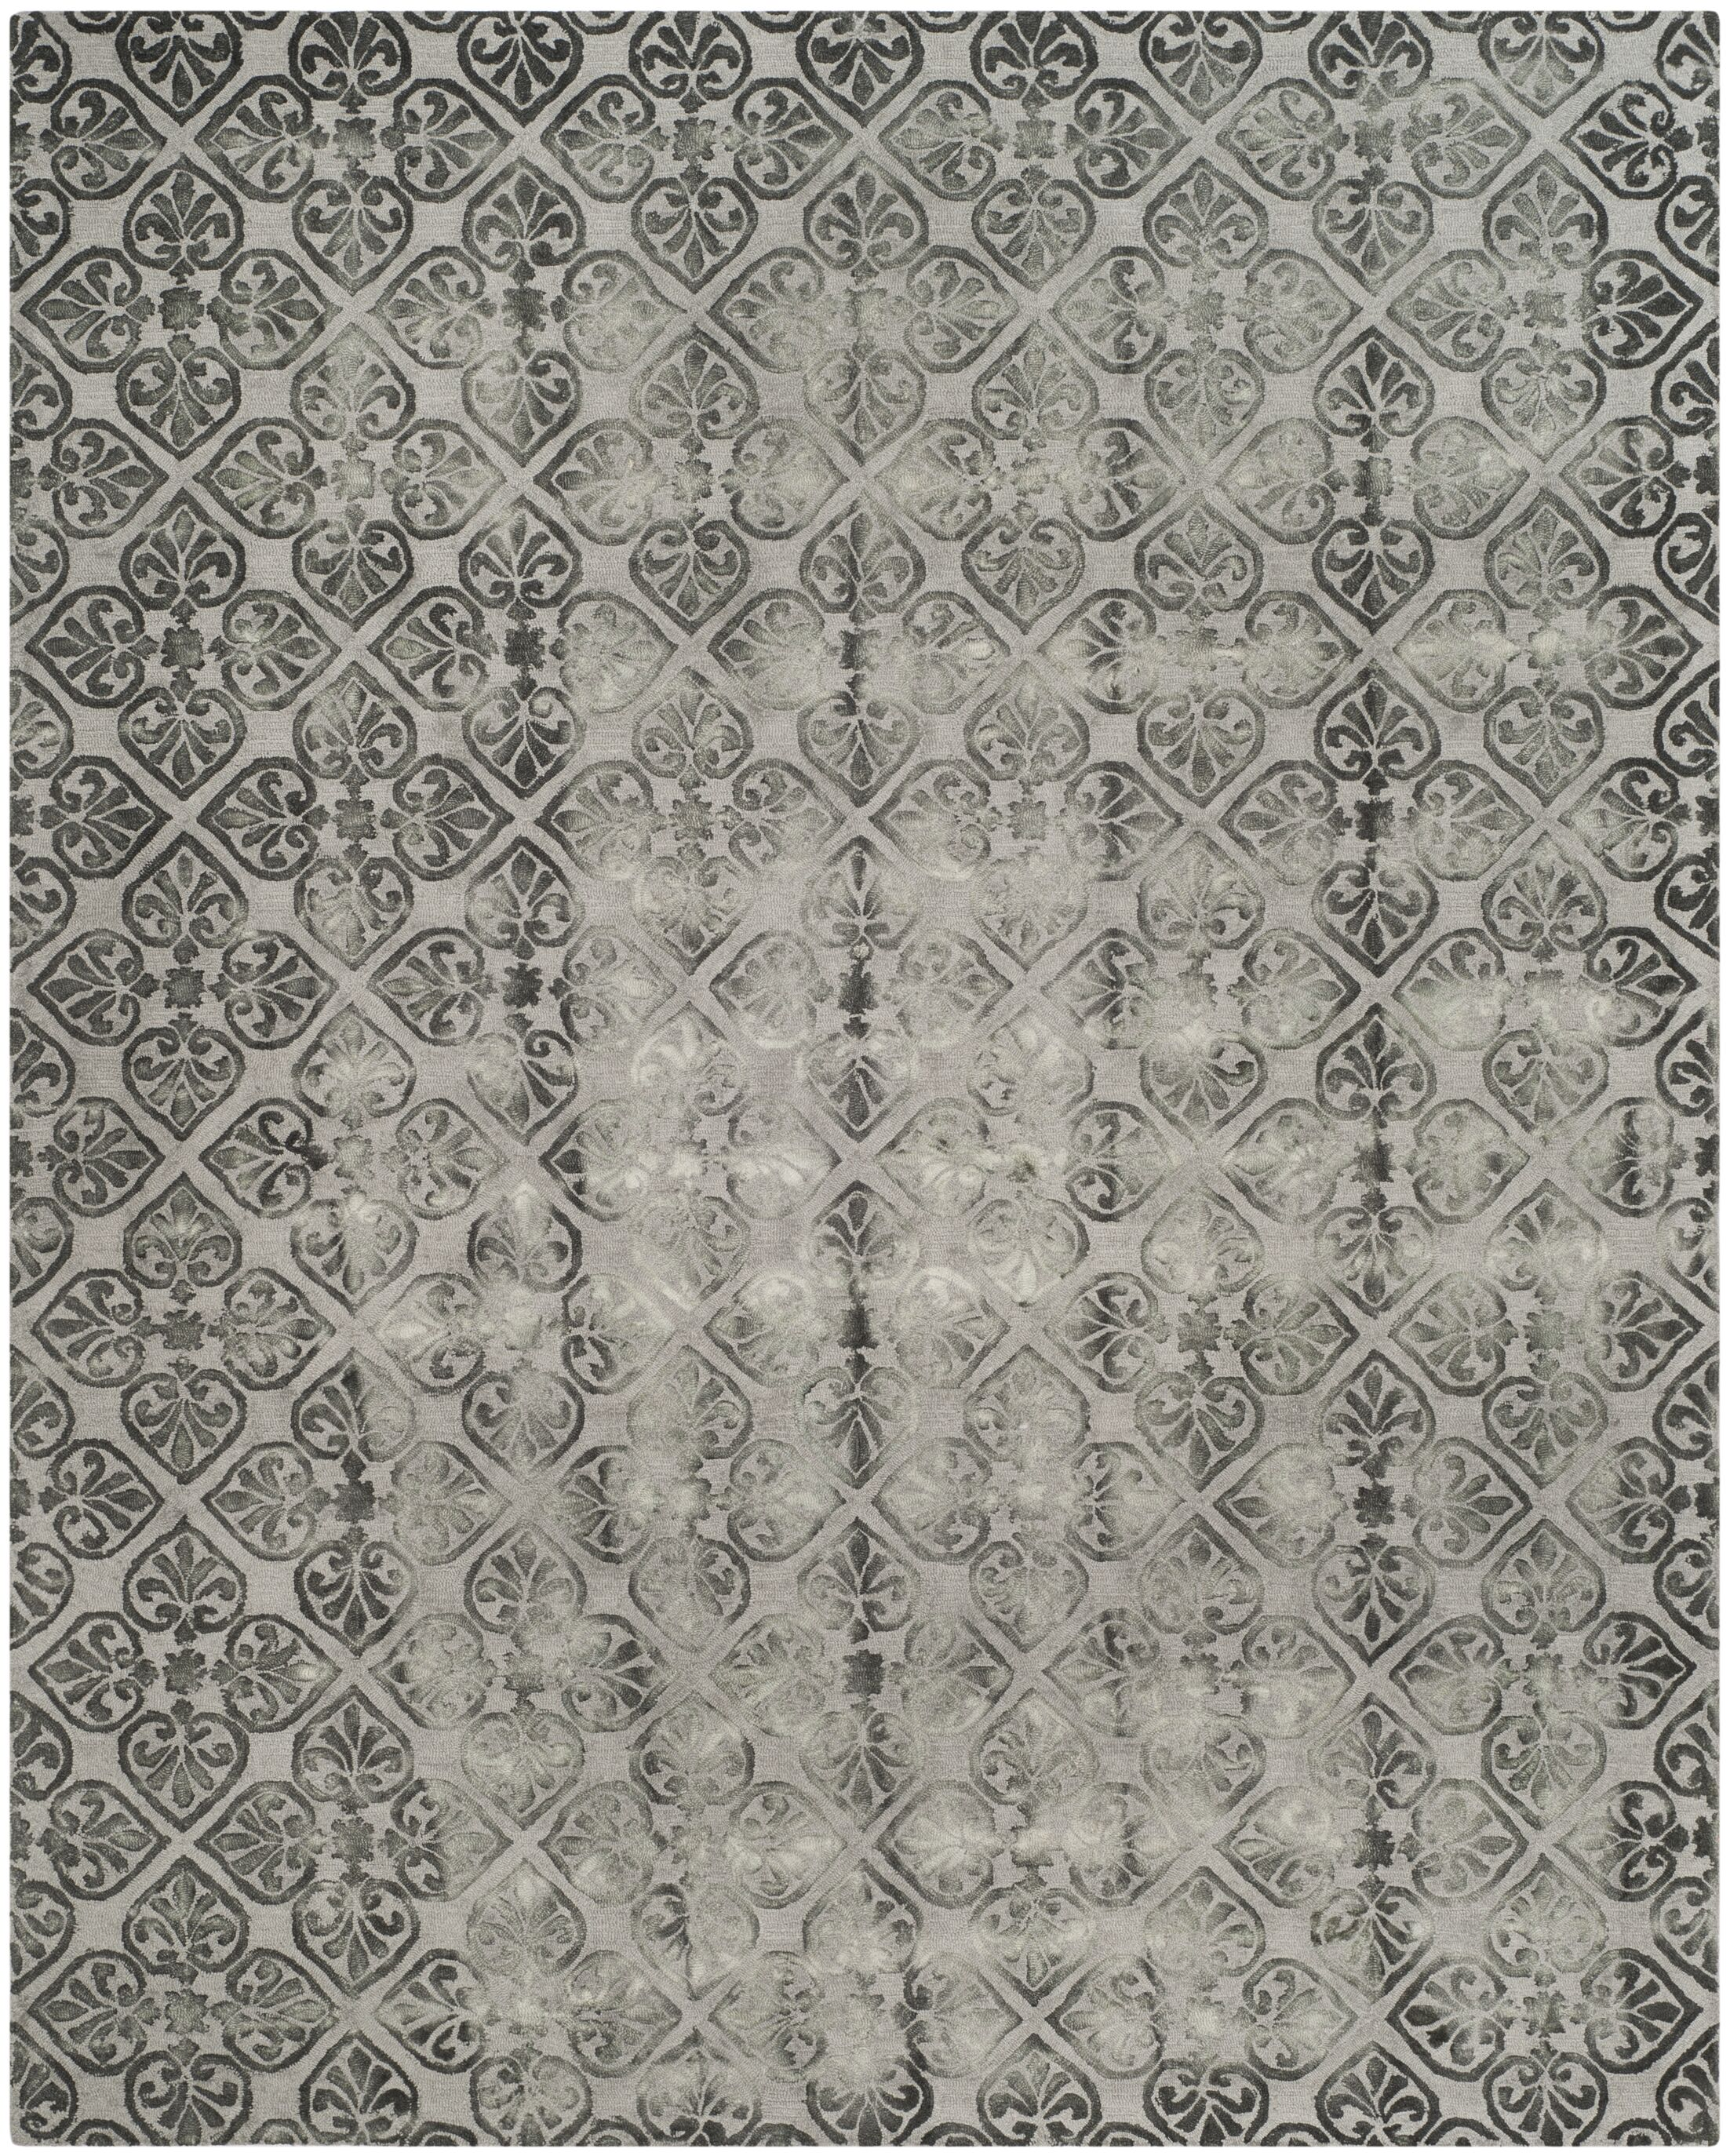 Edmeston Hand-Tufted Gray Wool Area Rug Rug Size: Rectangle 8' x 10'